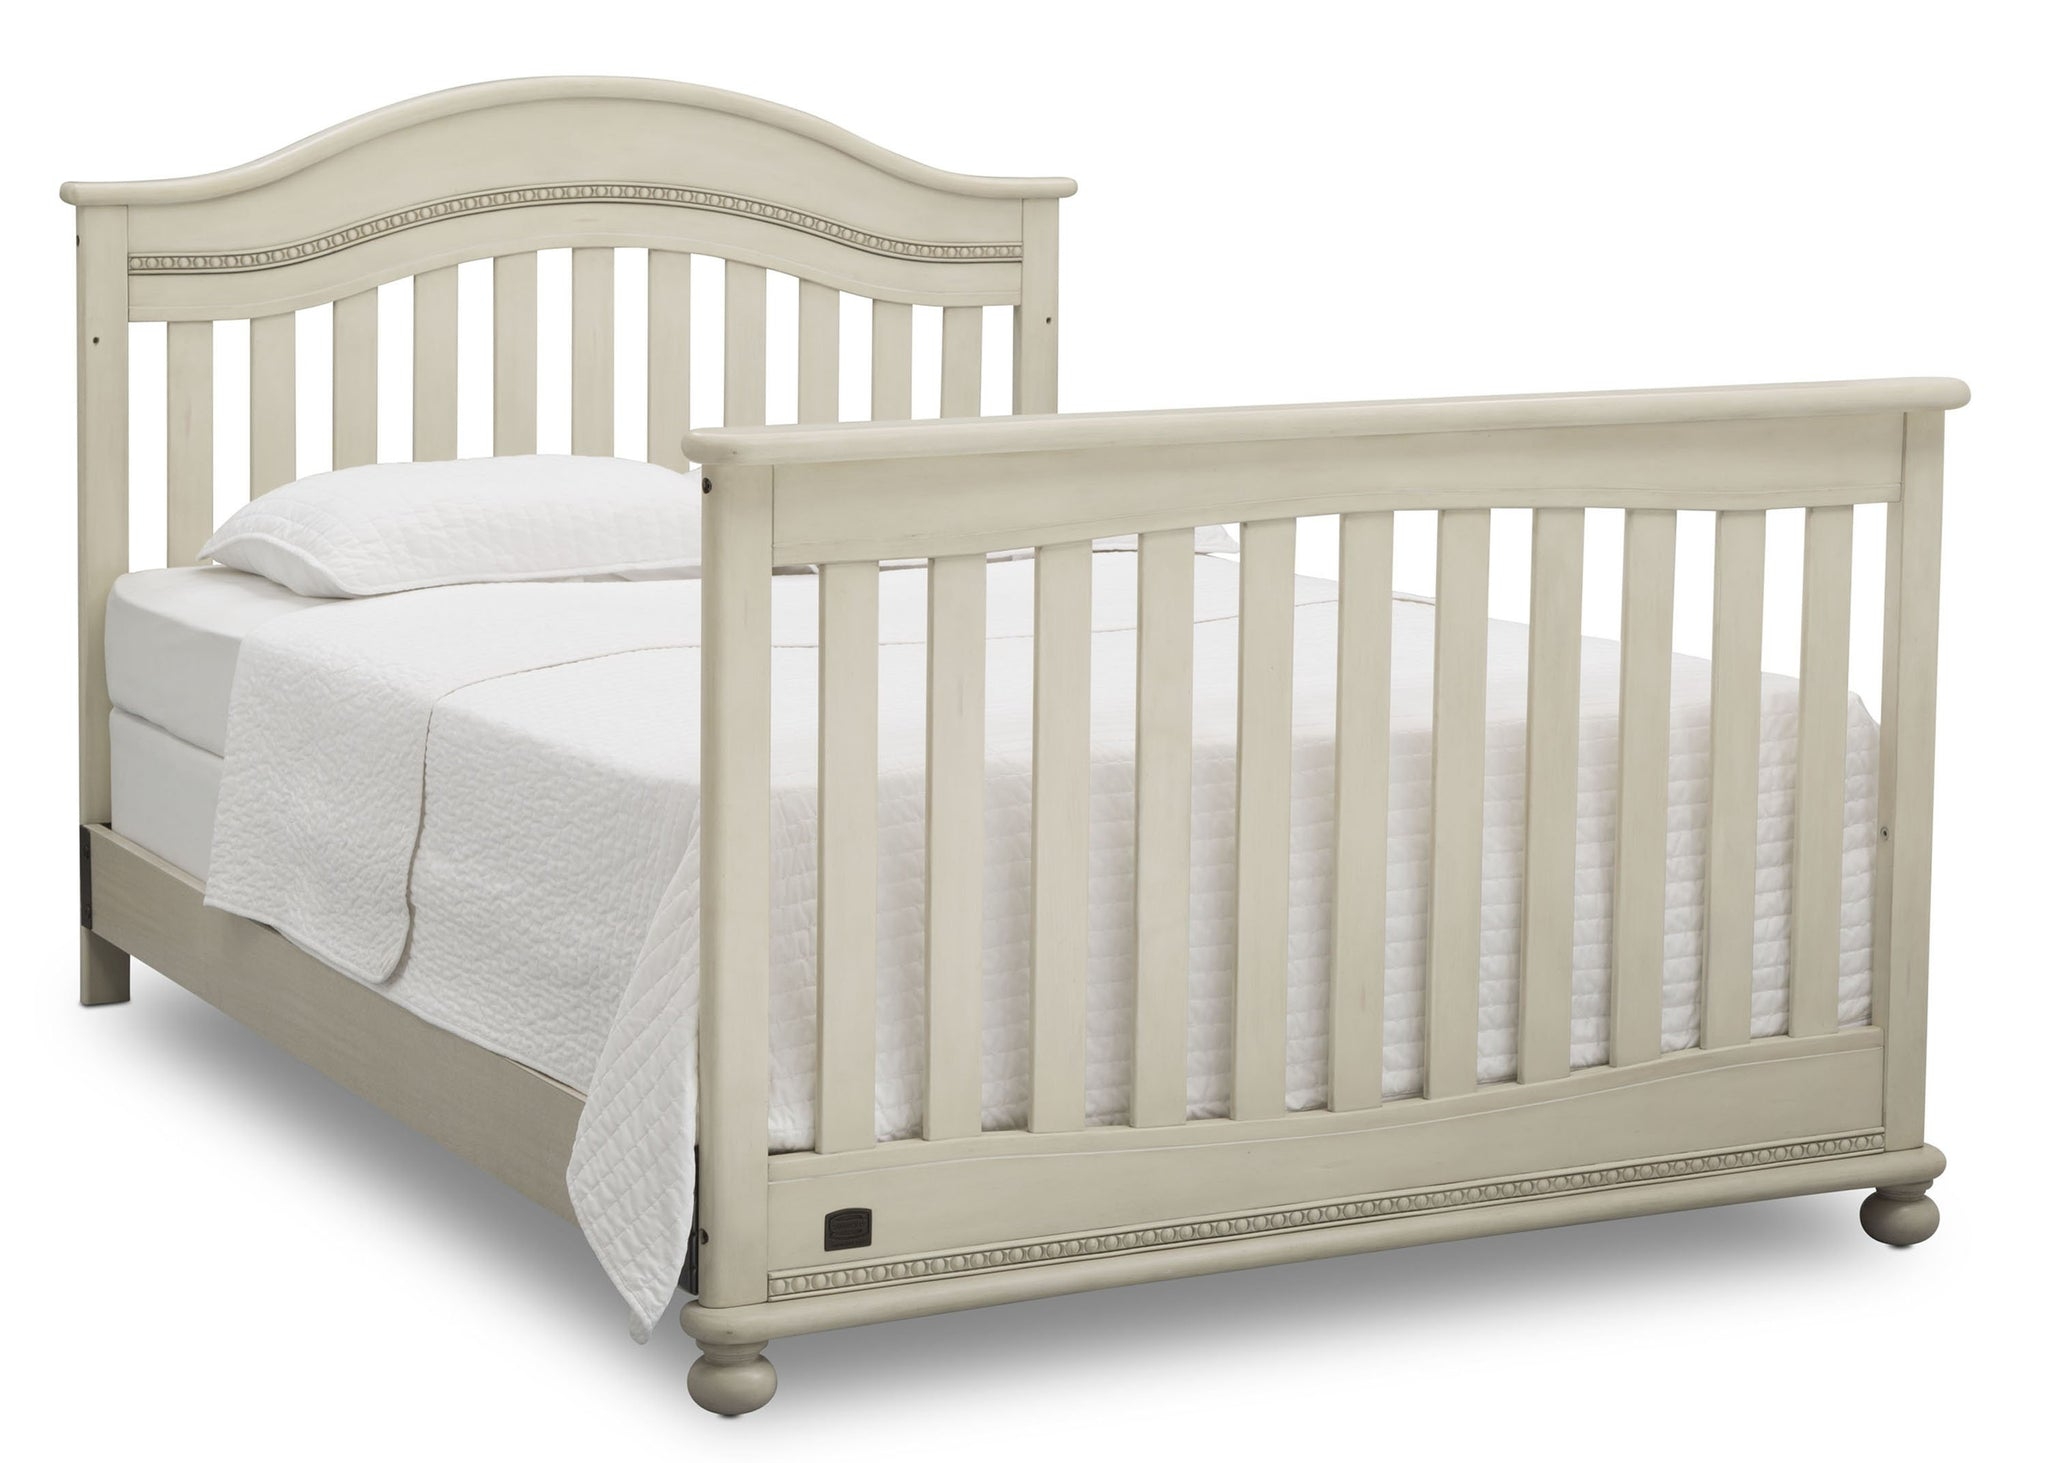 Delta Children Antique White (122) Bristol 4-in-1 Convertible Crib (W337450) Full Bed Conversion, a6a